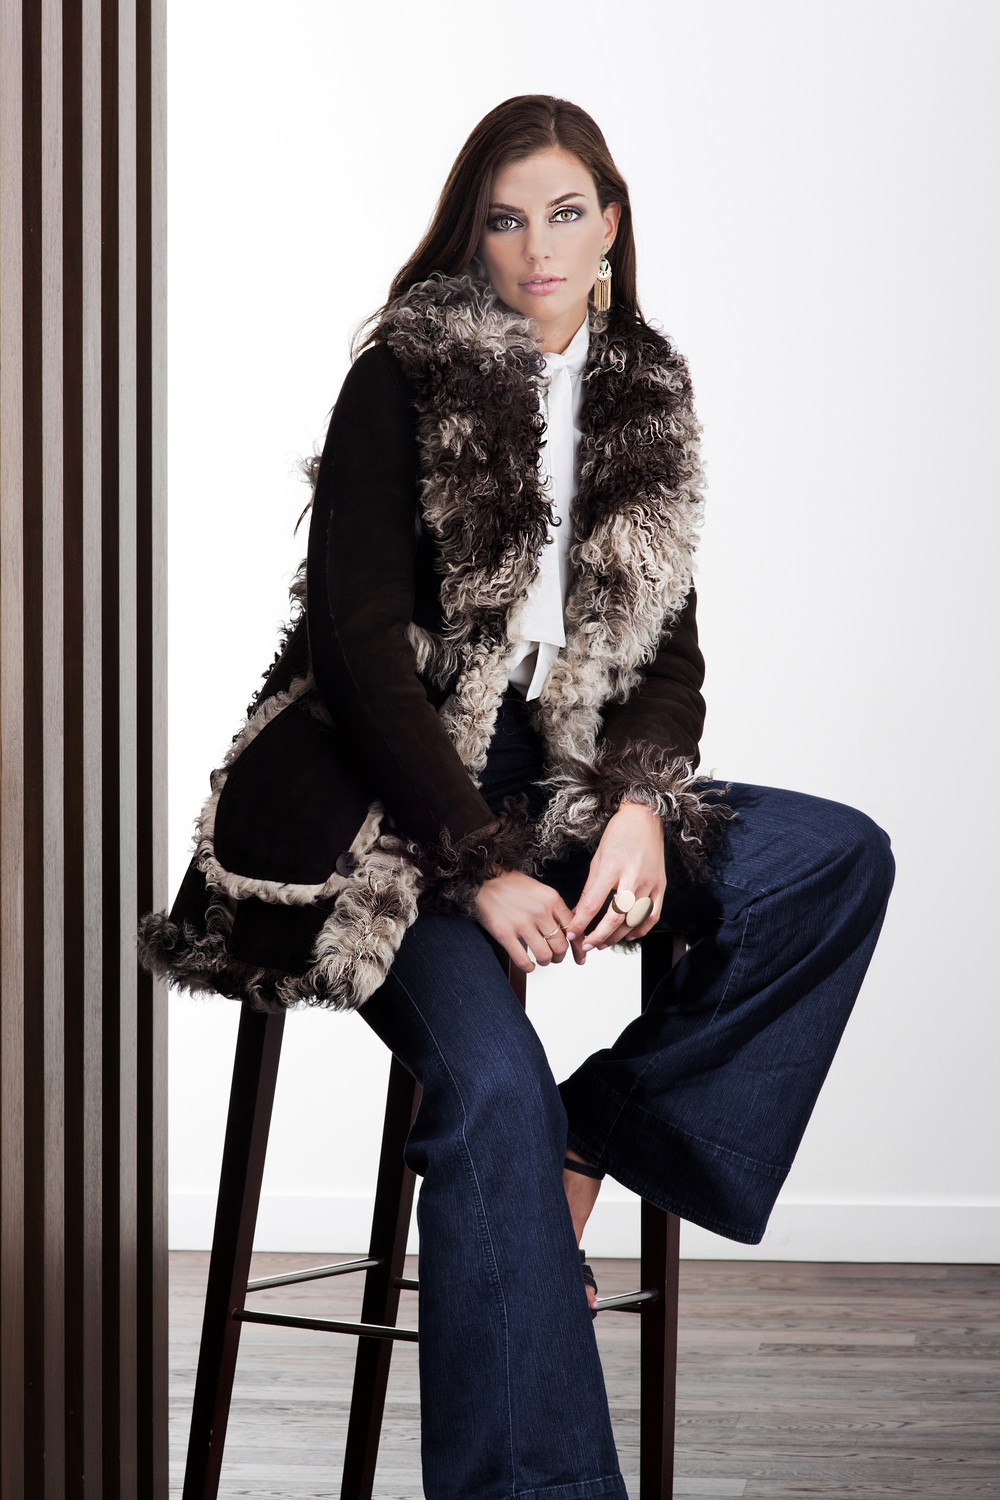 Shearling 2016 Carol Gallacher designer for HiSO, Styling: Amber Watkins, Photography: Mike Lewis, Hair and Makeup: Taca Ozawa